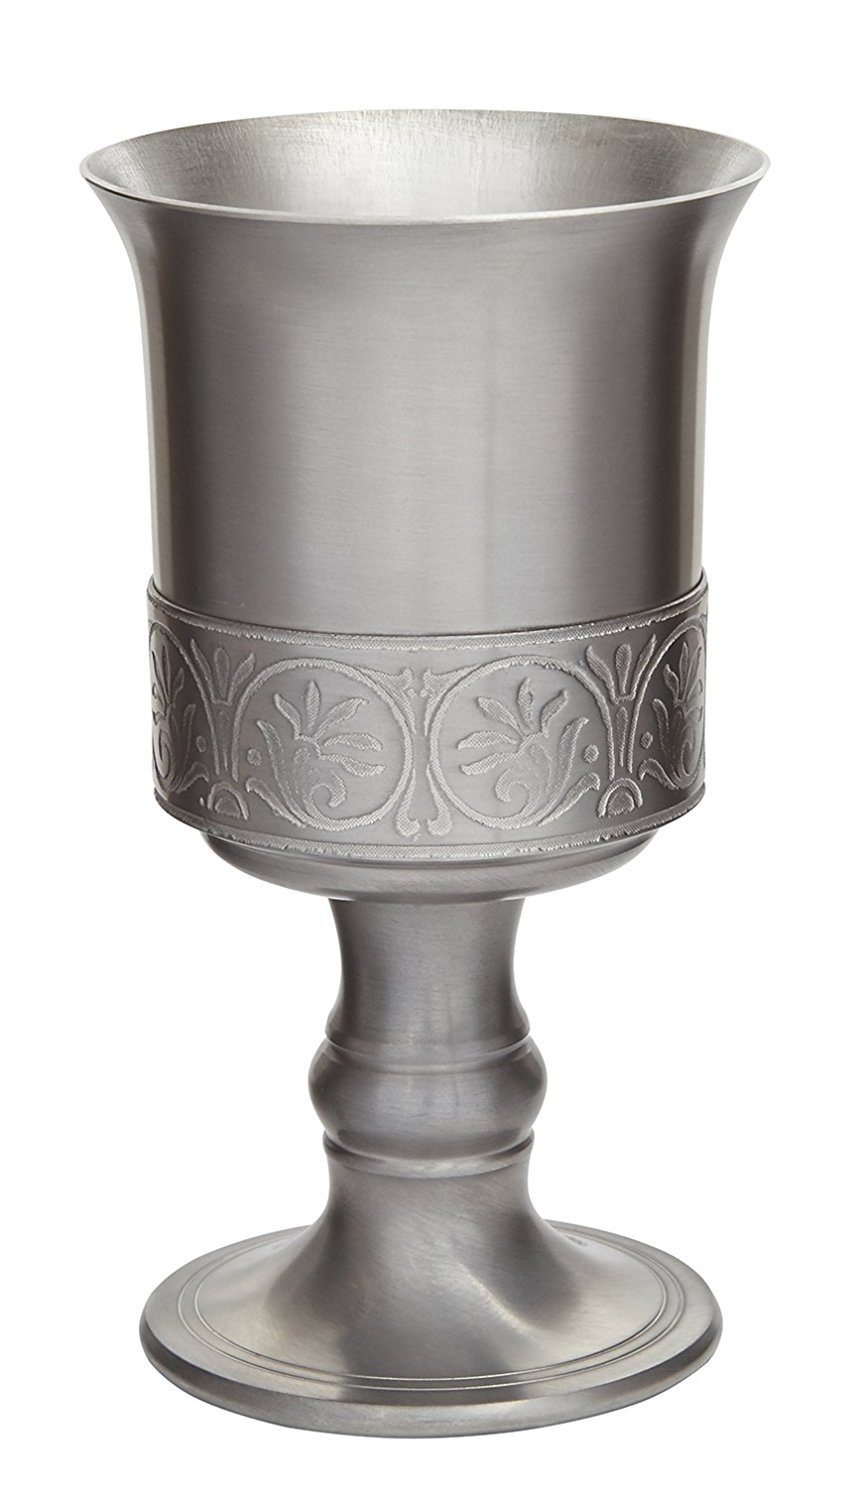 Wentworth Pewter Medieval Antique Finish Pewter Goblet